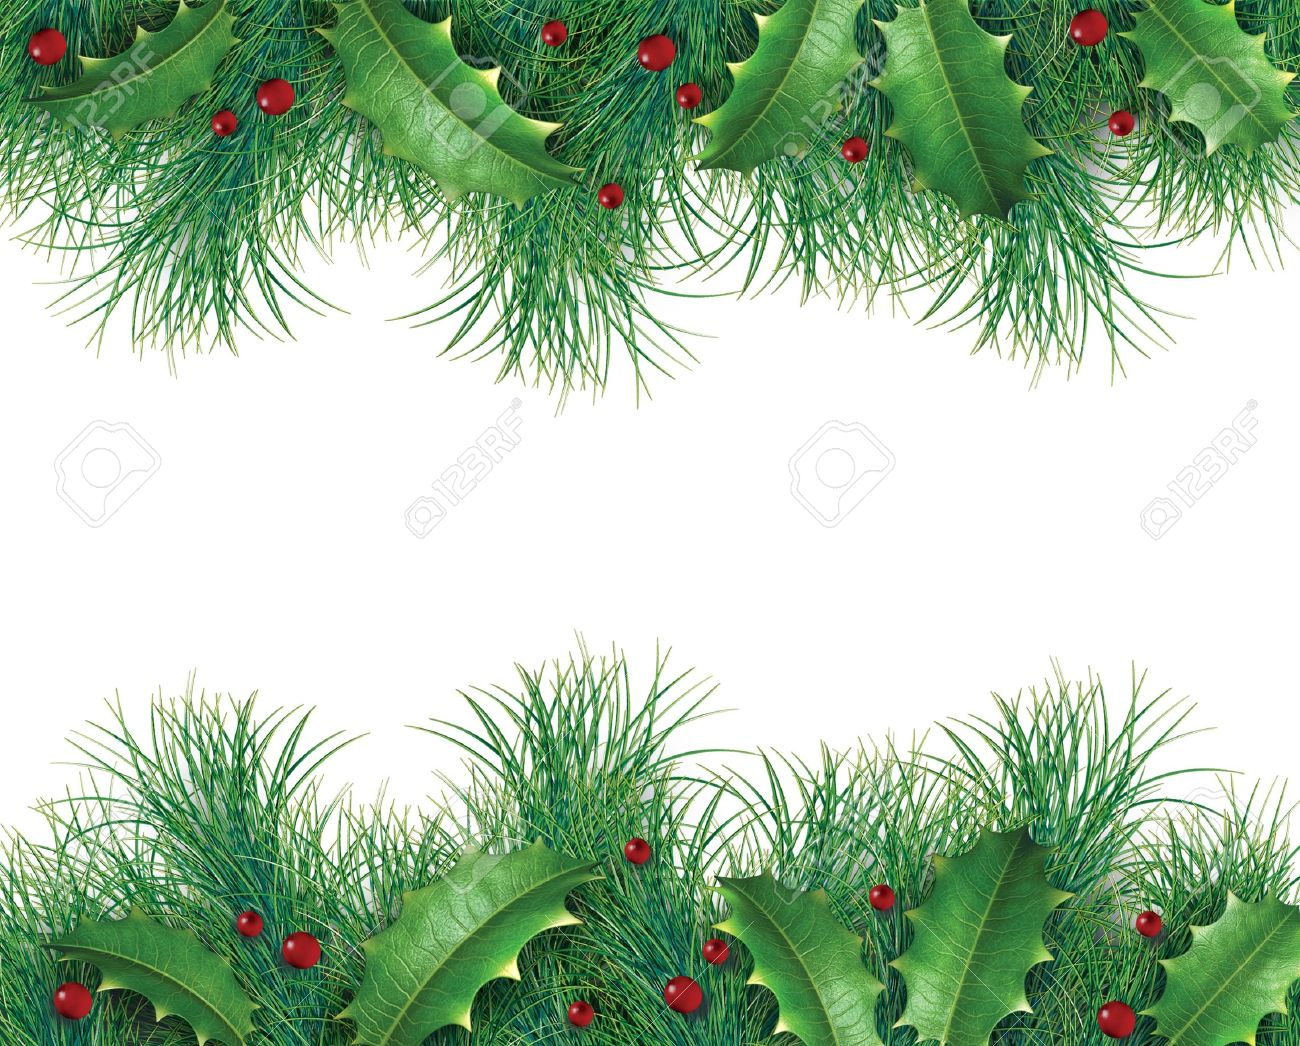 Holly christmas ornaments - Evergreen Garland Pine Branches With Holly And Red Berries For A Christmas Holiday Decorative Evergreen